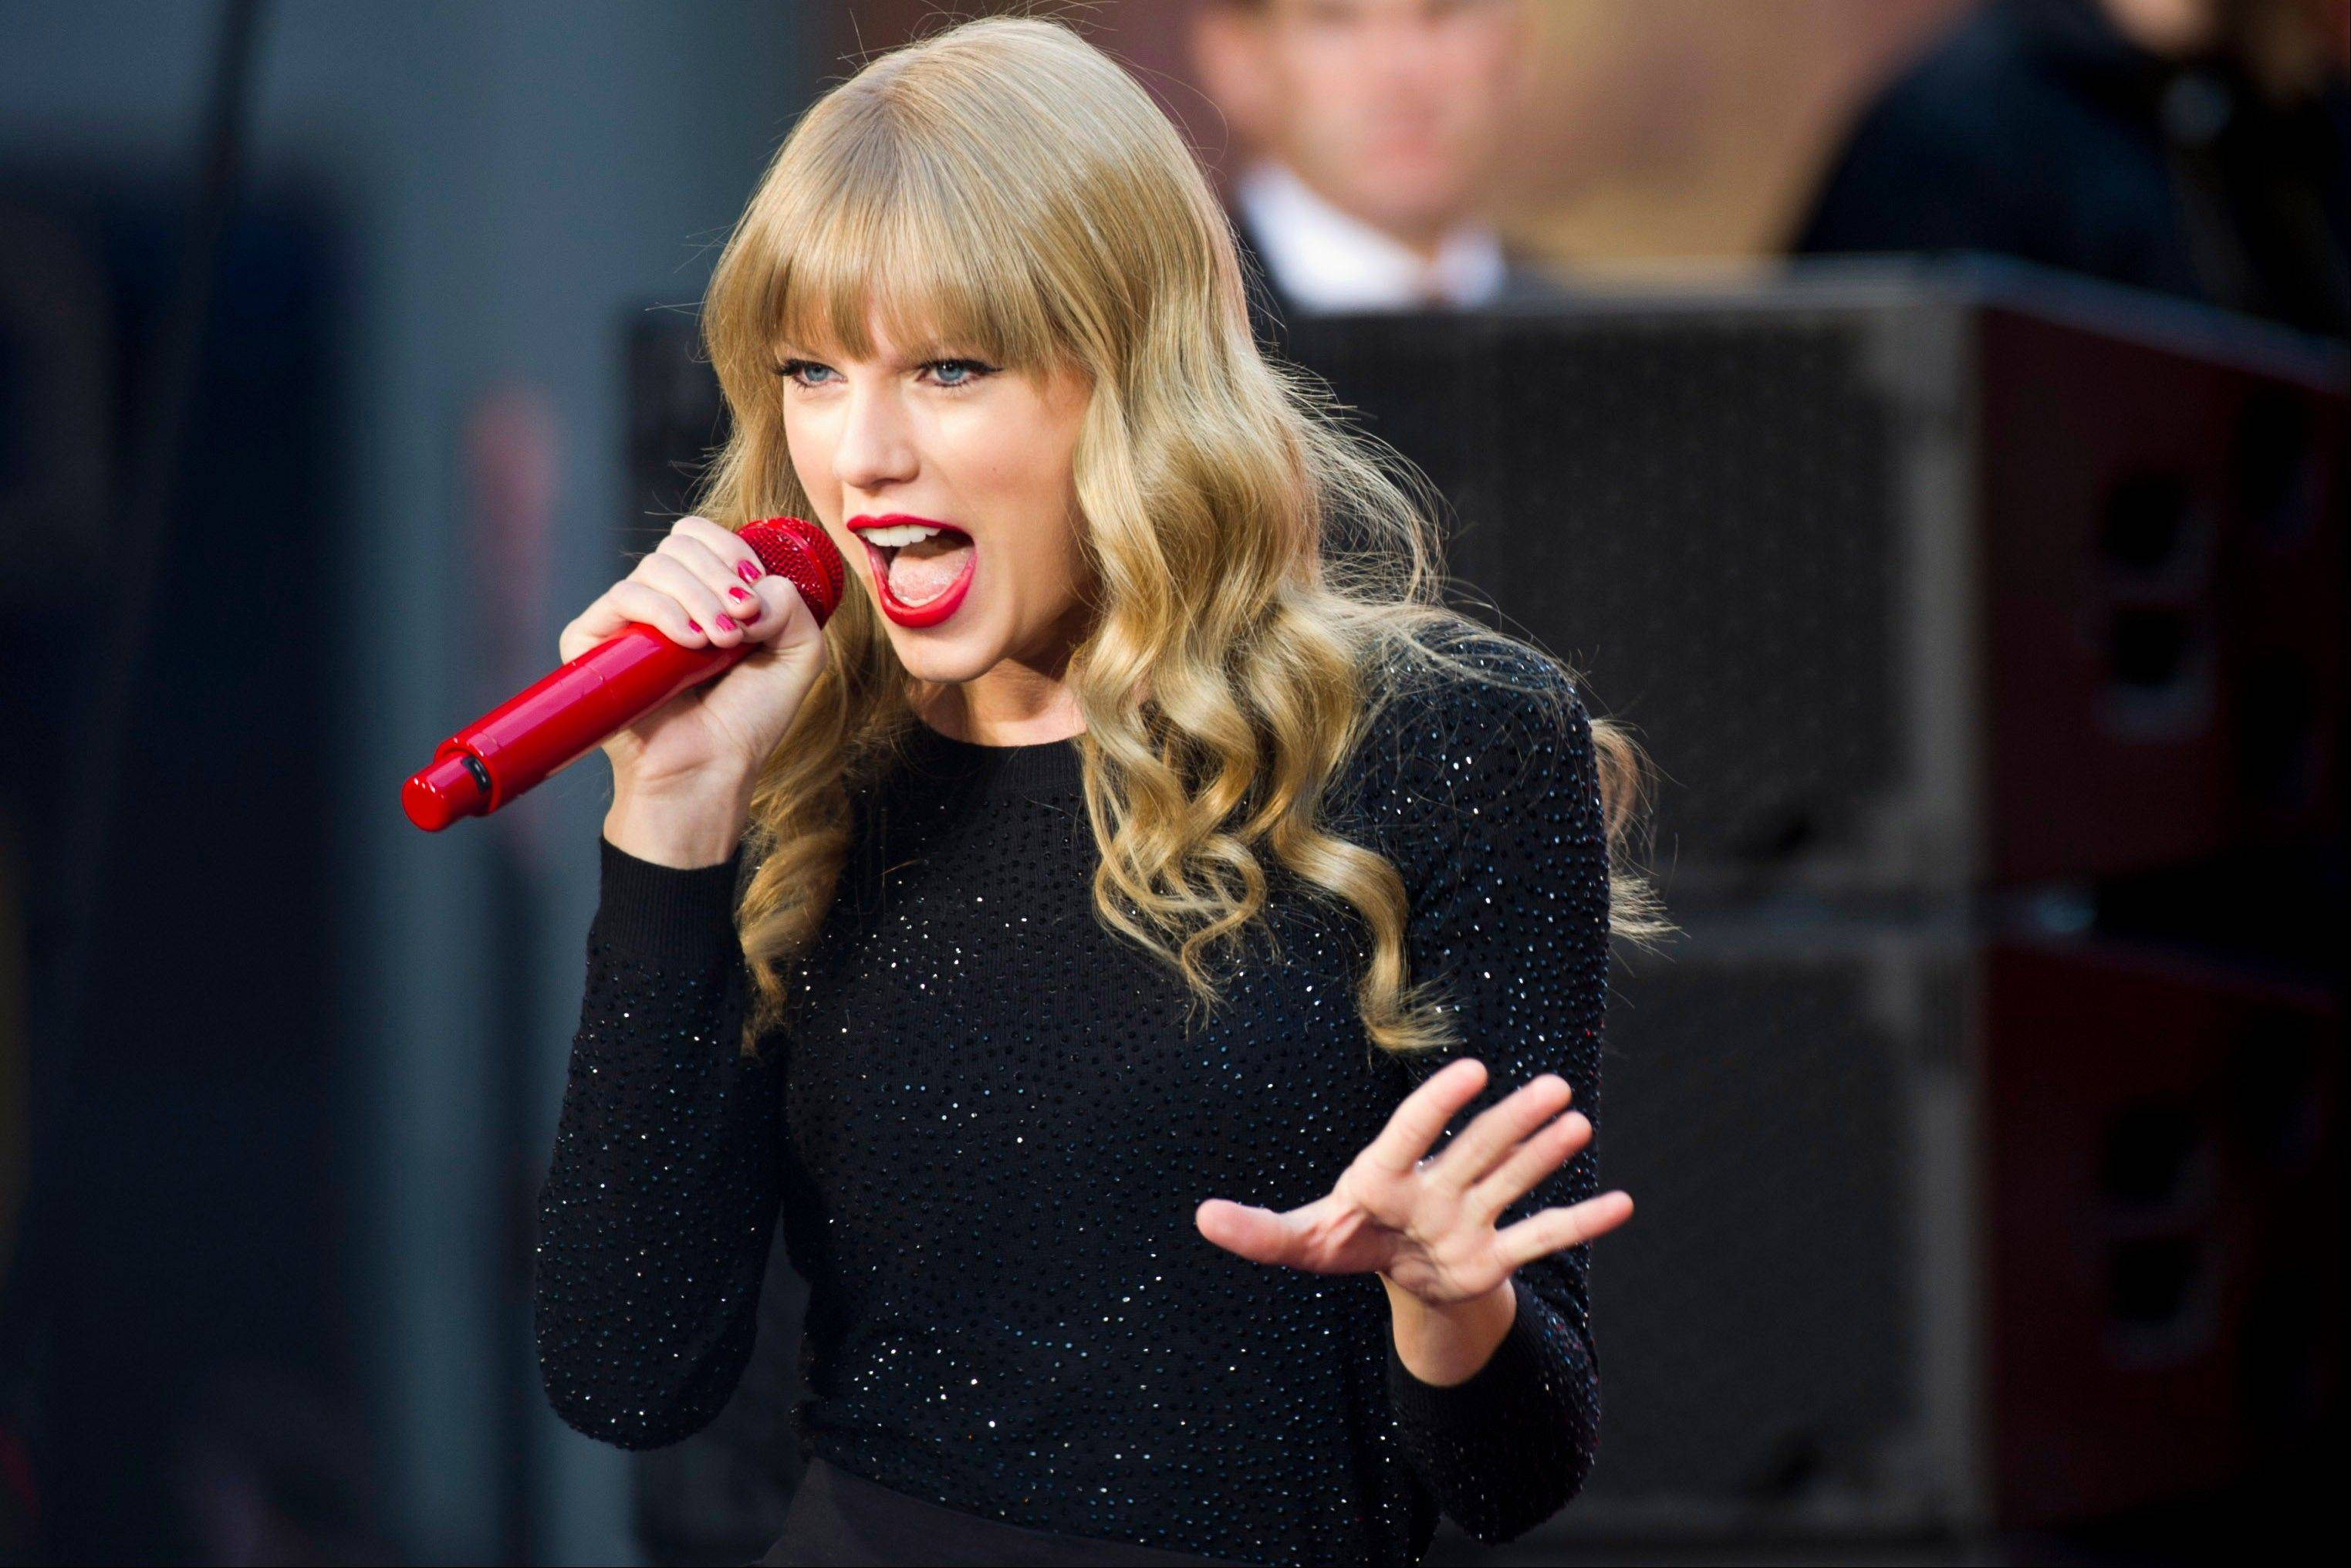 Taylor Swift will co-host the Grammy nominations concert with LL COOL J on Dec. 5, in Nashville, Tenn.